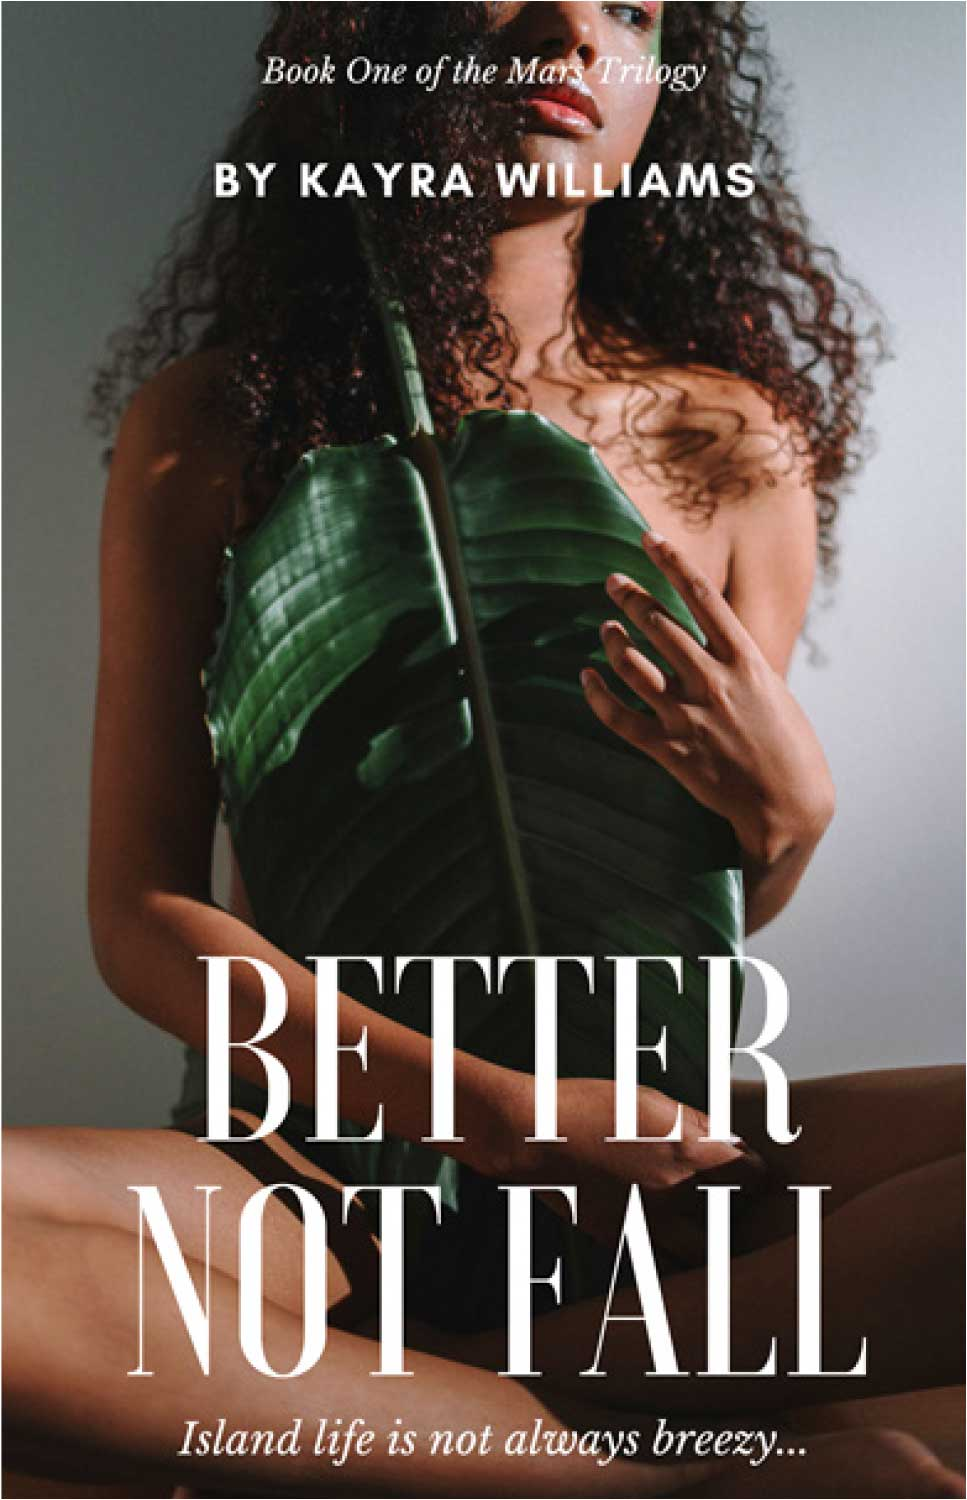 Cover of new Book 'Better Not Fall' by Kayra Williams